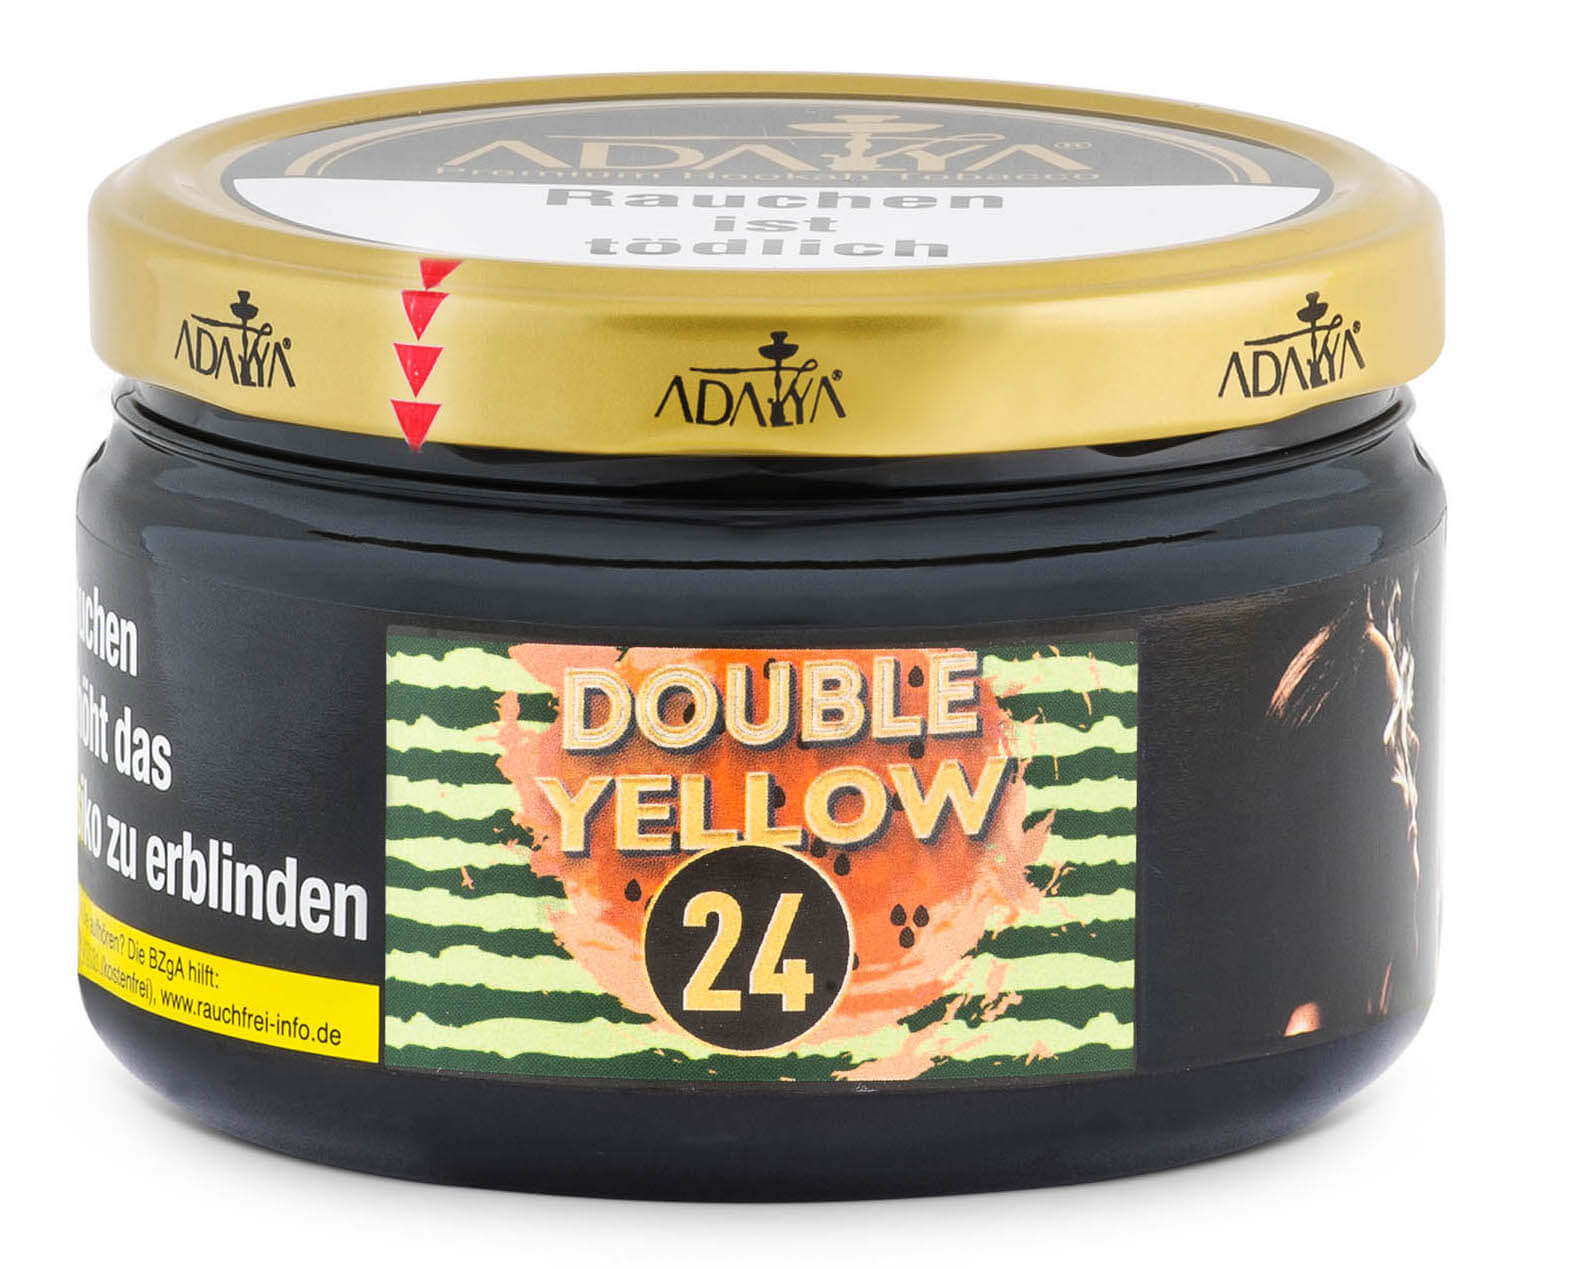 Adalya Tabak Double Yellow 200g Dose